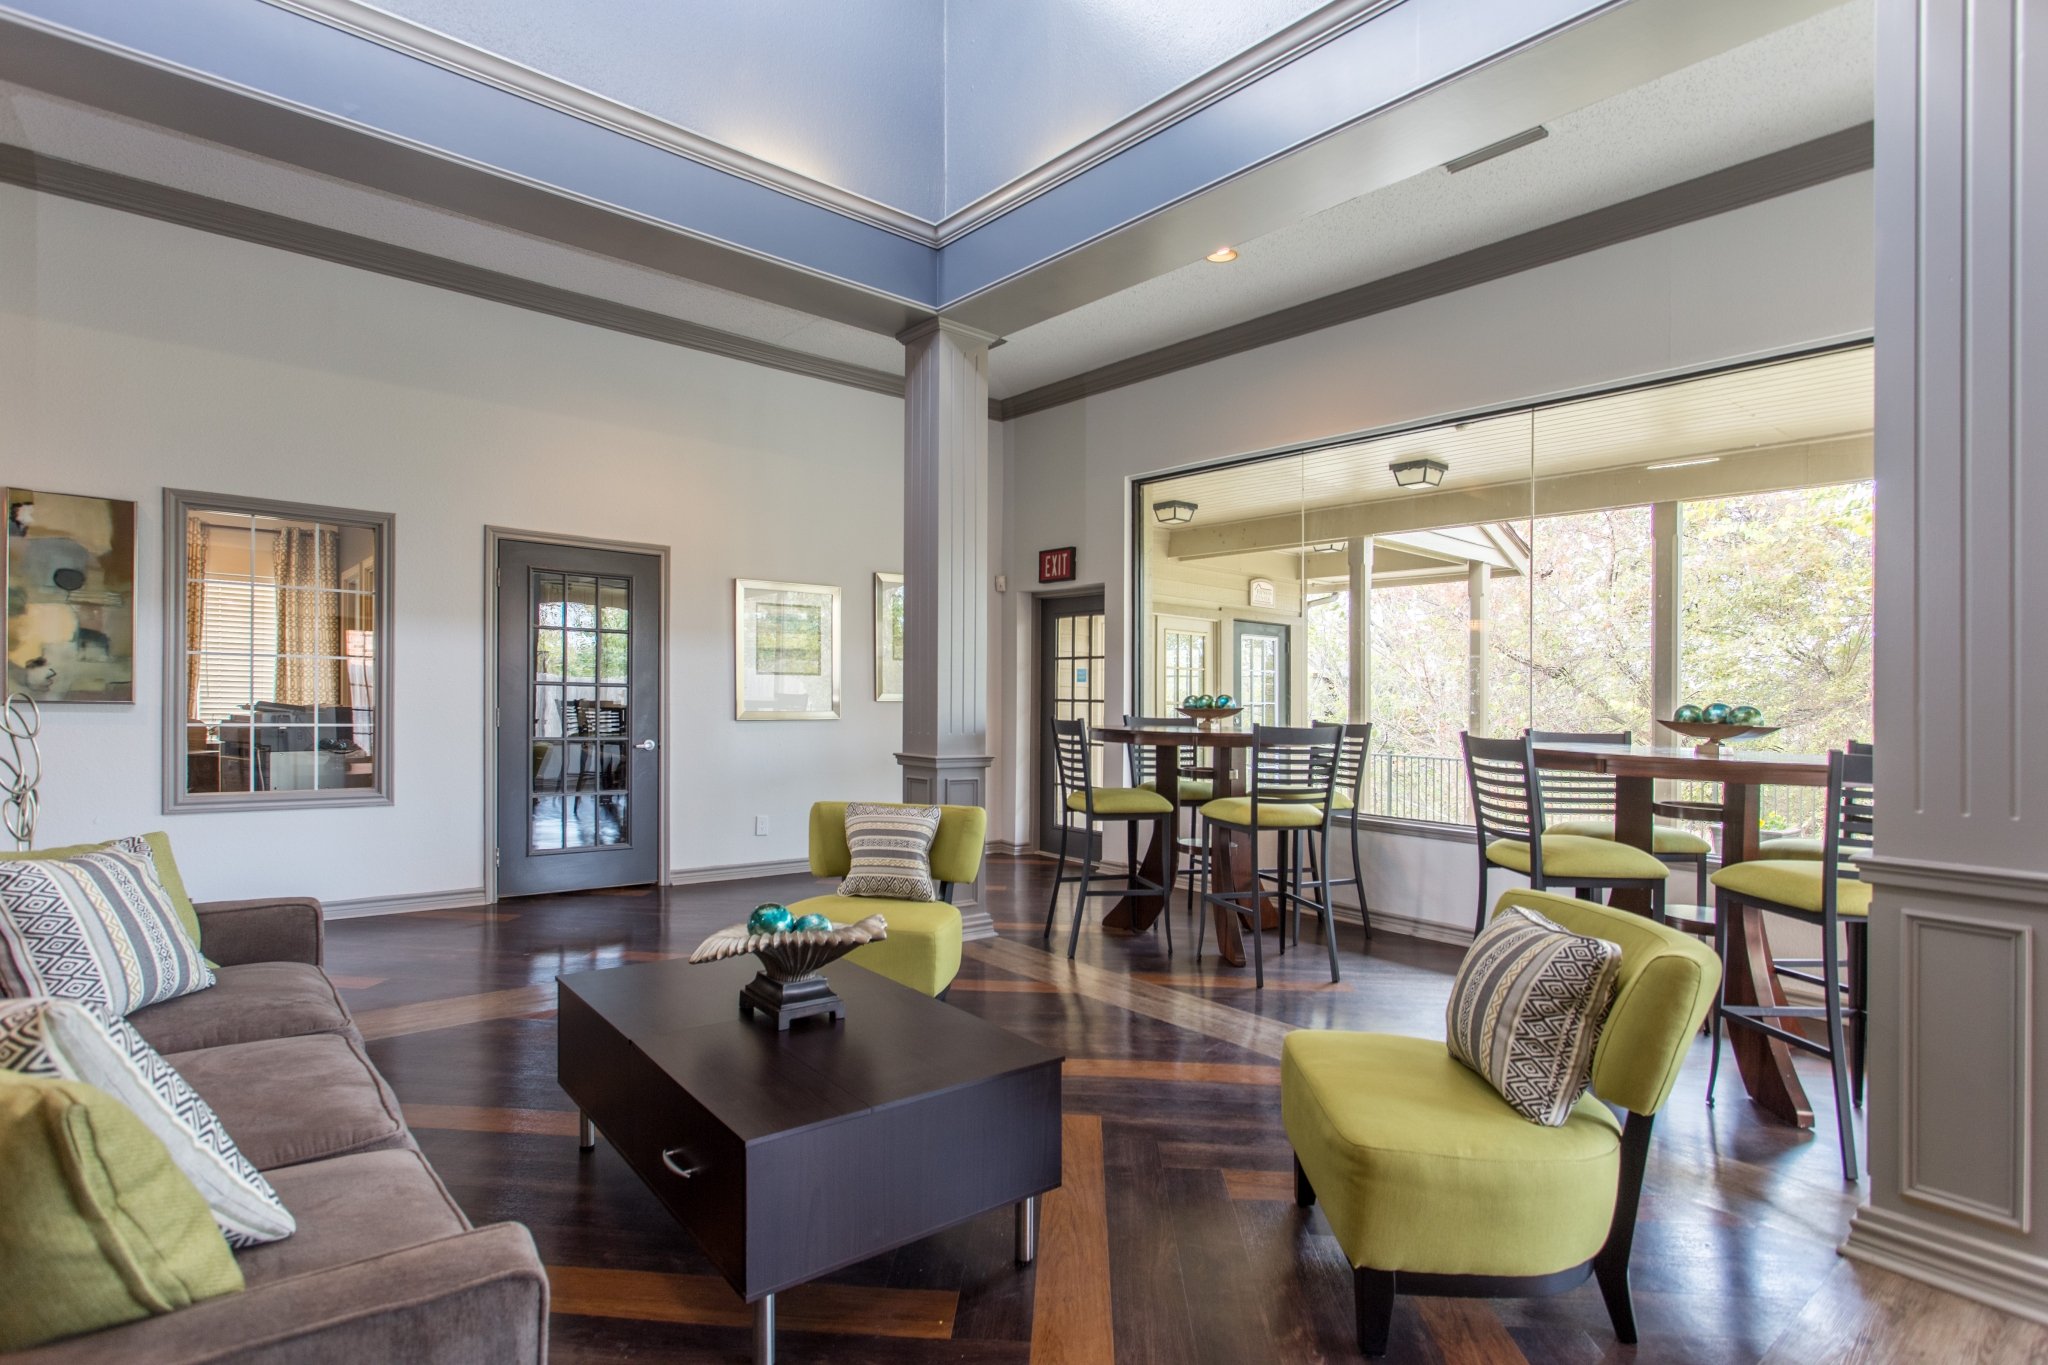 Apartments For Rent at The Gables of McKinney, TX | Clubhouse Overlooking the Pool